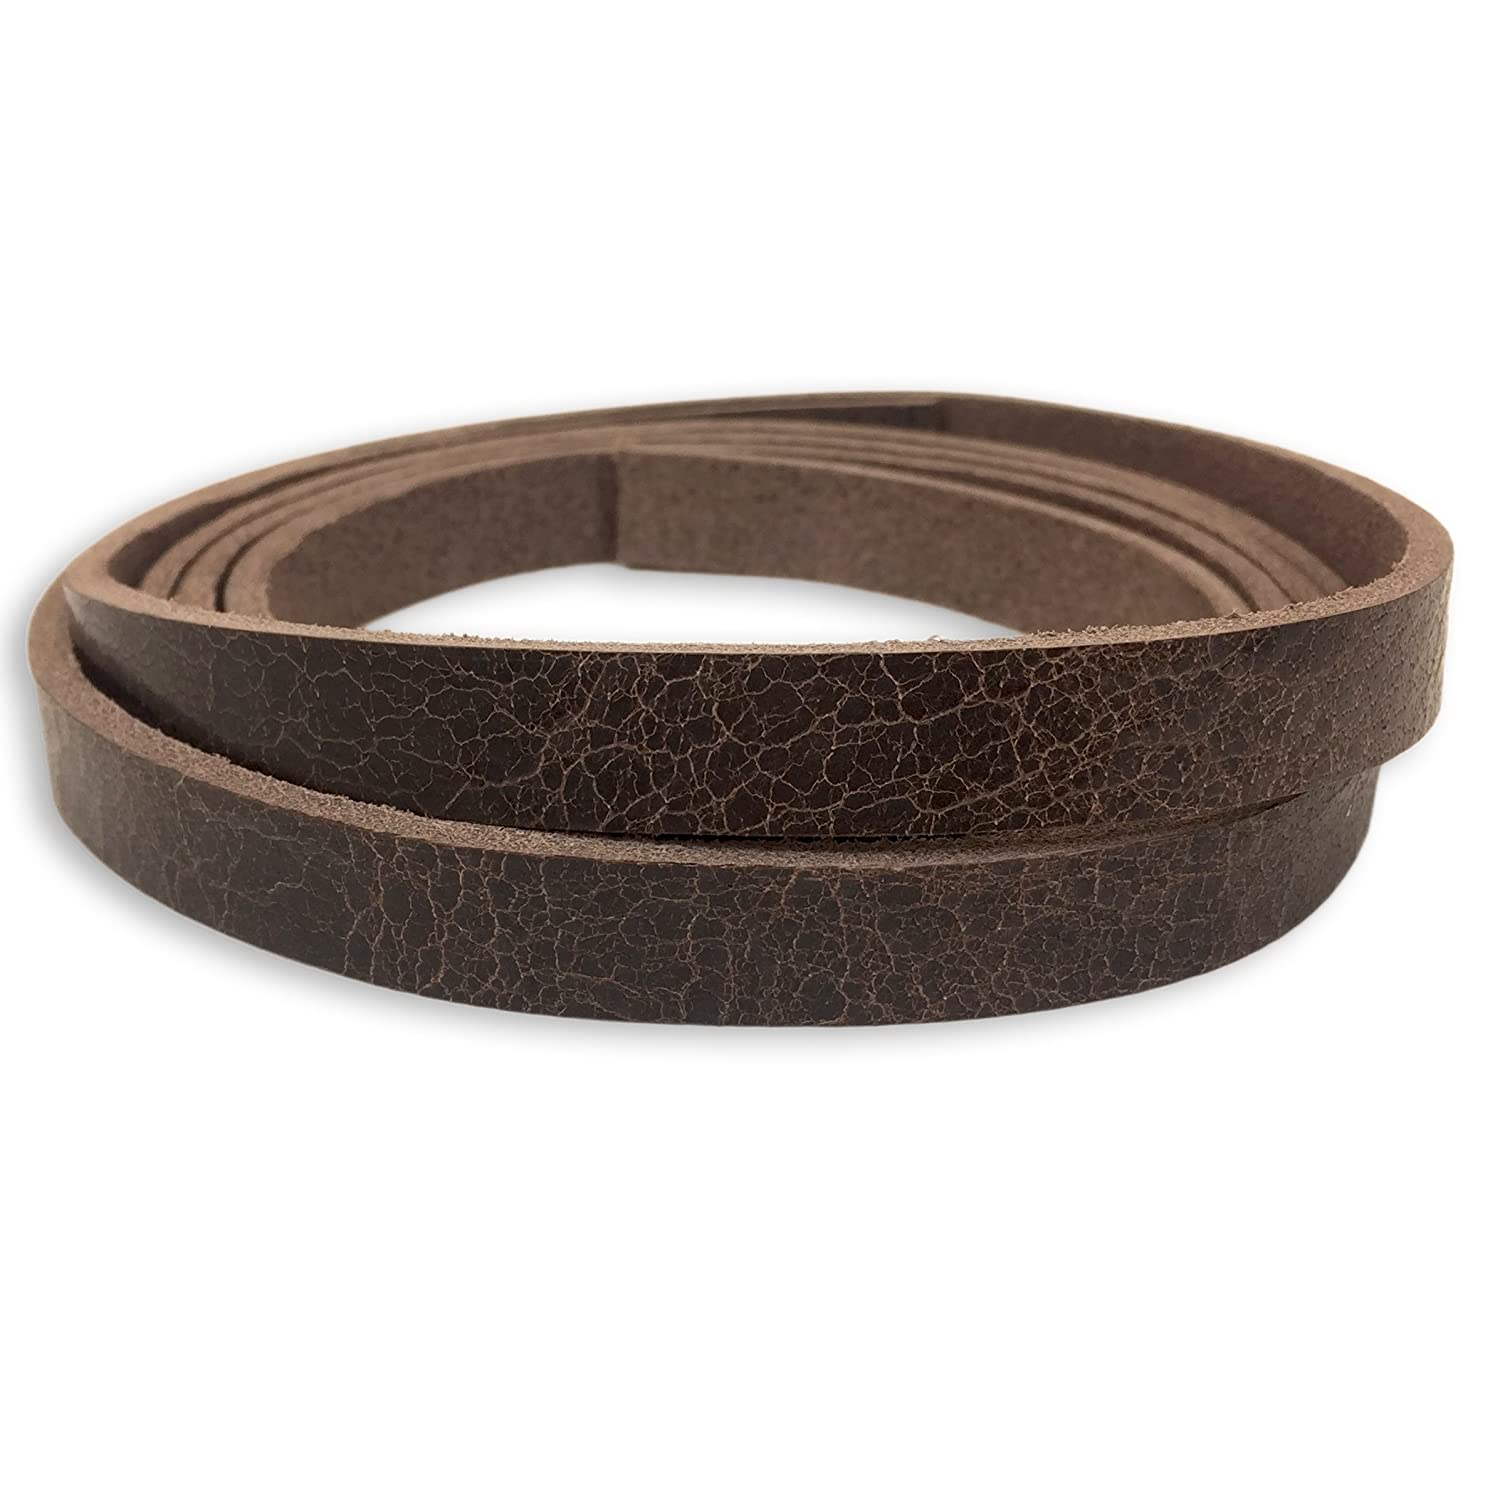 1-1//4 inch, Black Springfield Leather Company Buffalo Leather Strips